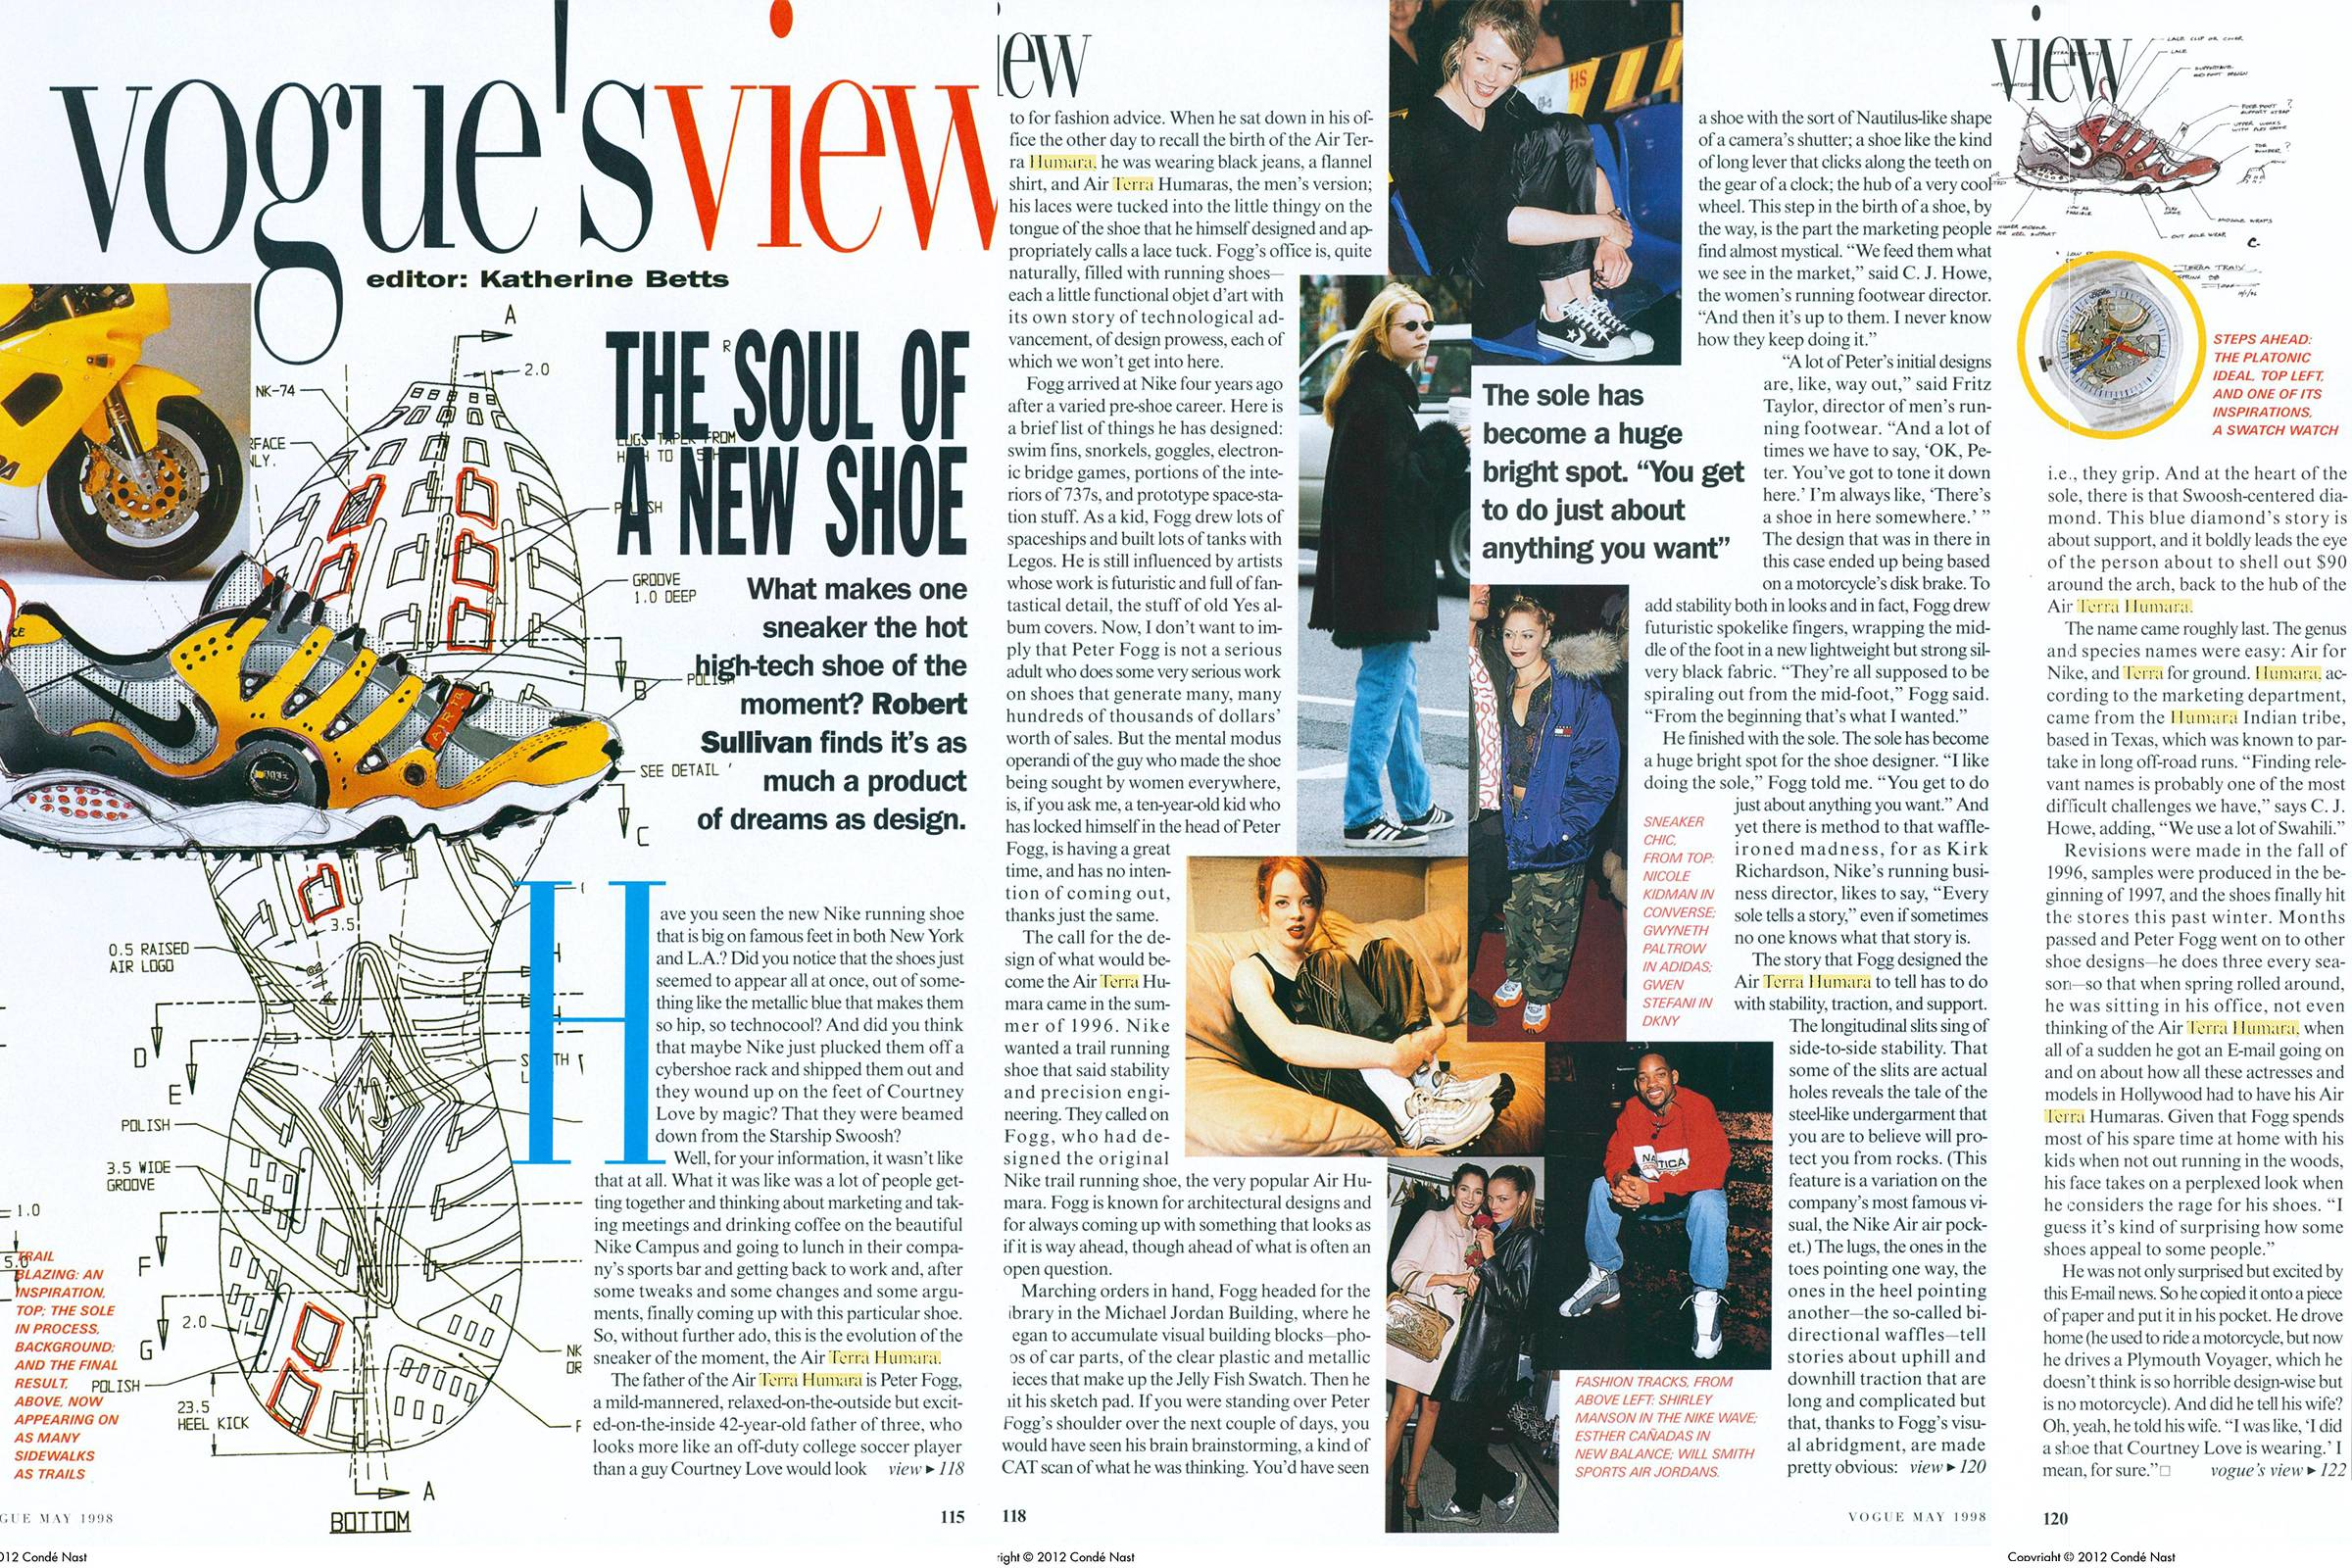 """Vogue's View"" editorial on the Nike Air Humara, the Nike Air Terra Humara and Peter Fogg in the May 1998 issue of ""Vogue"""